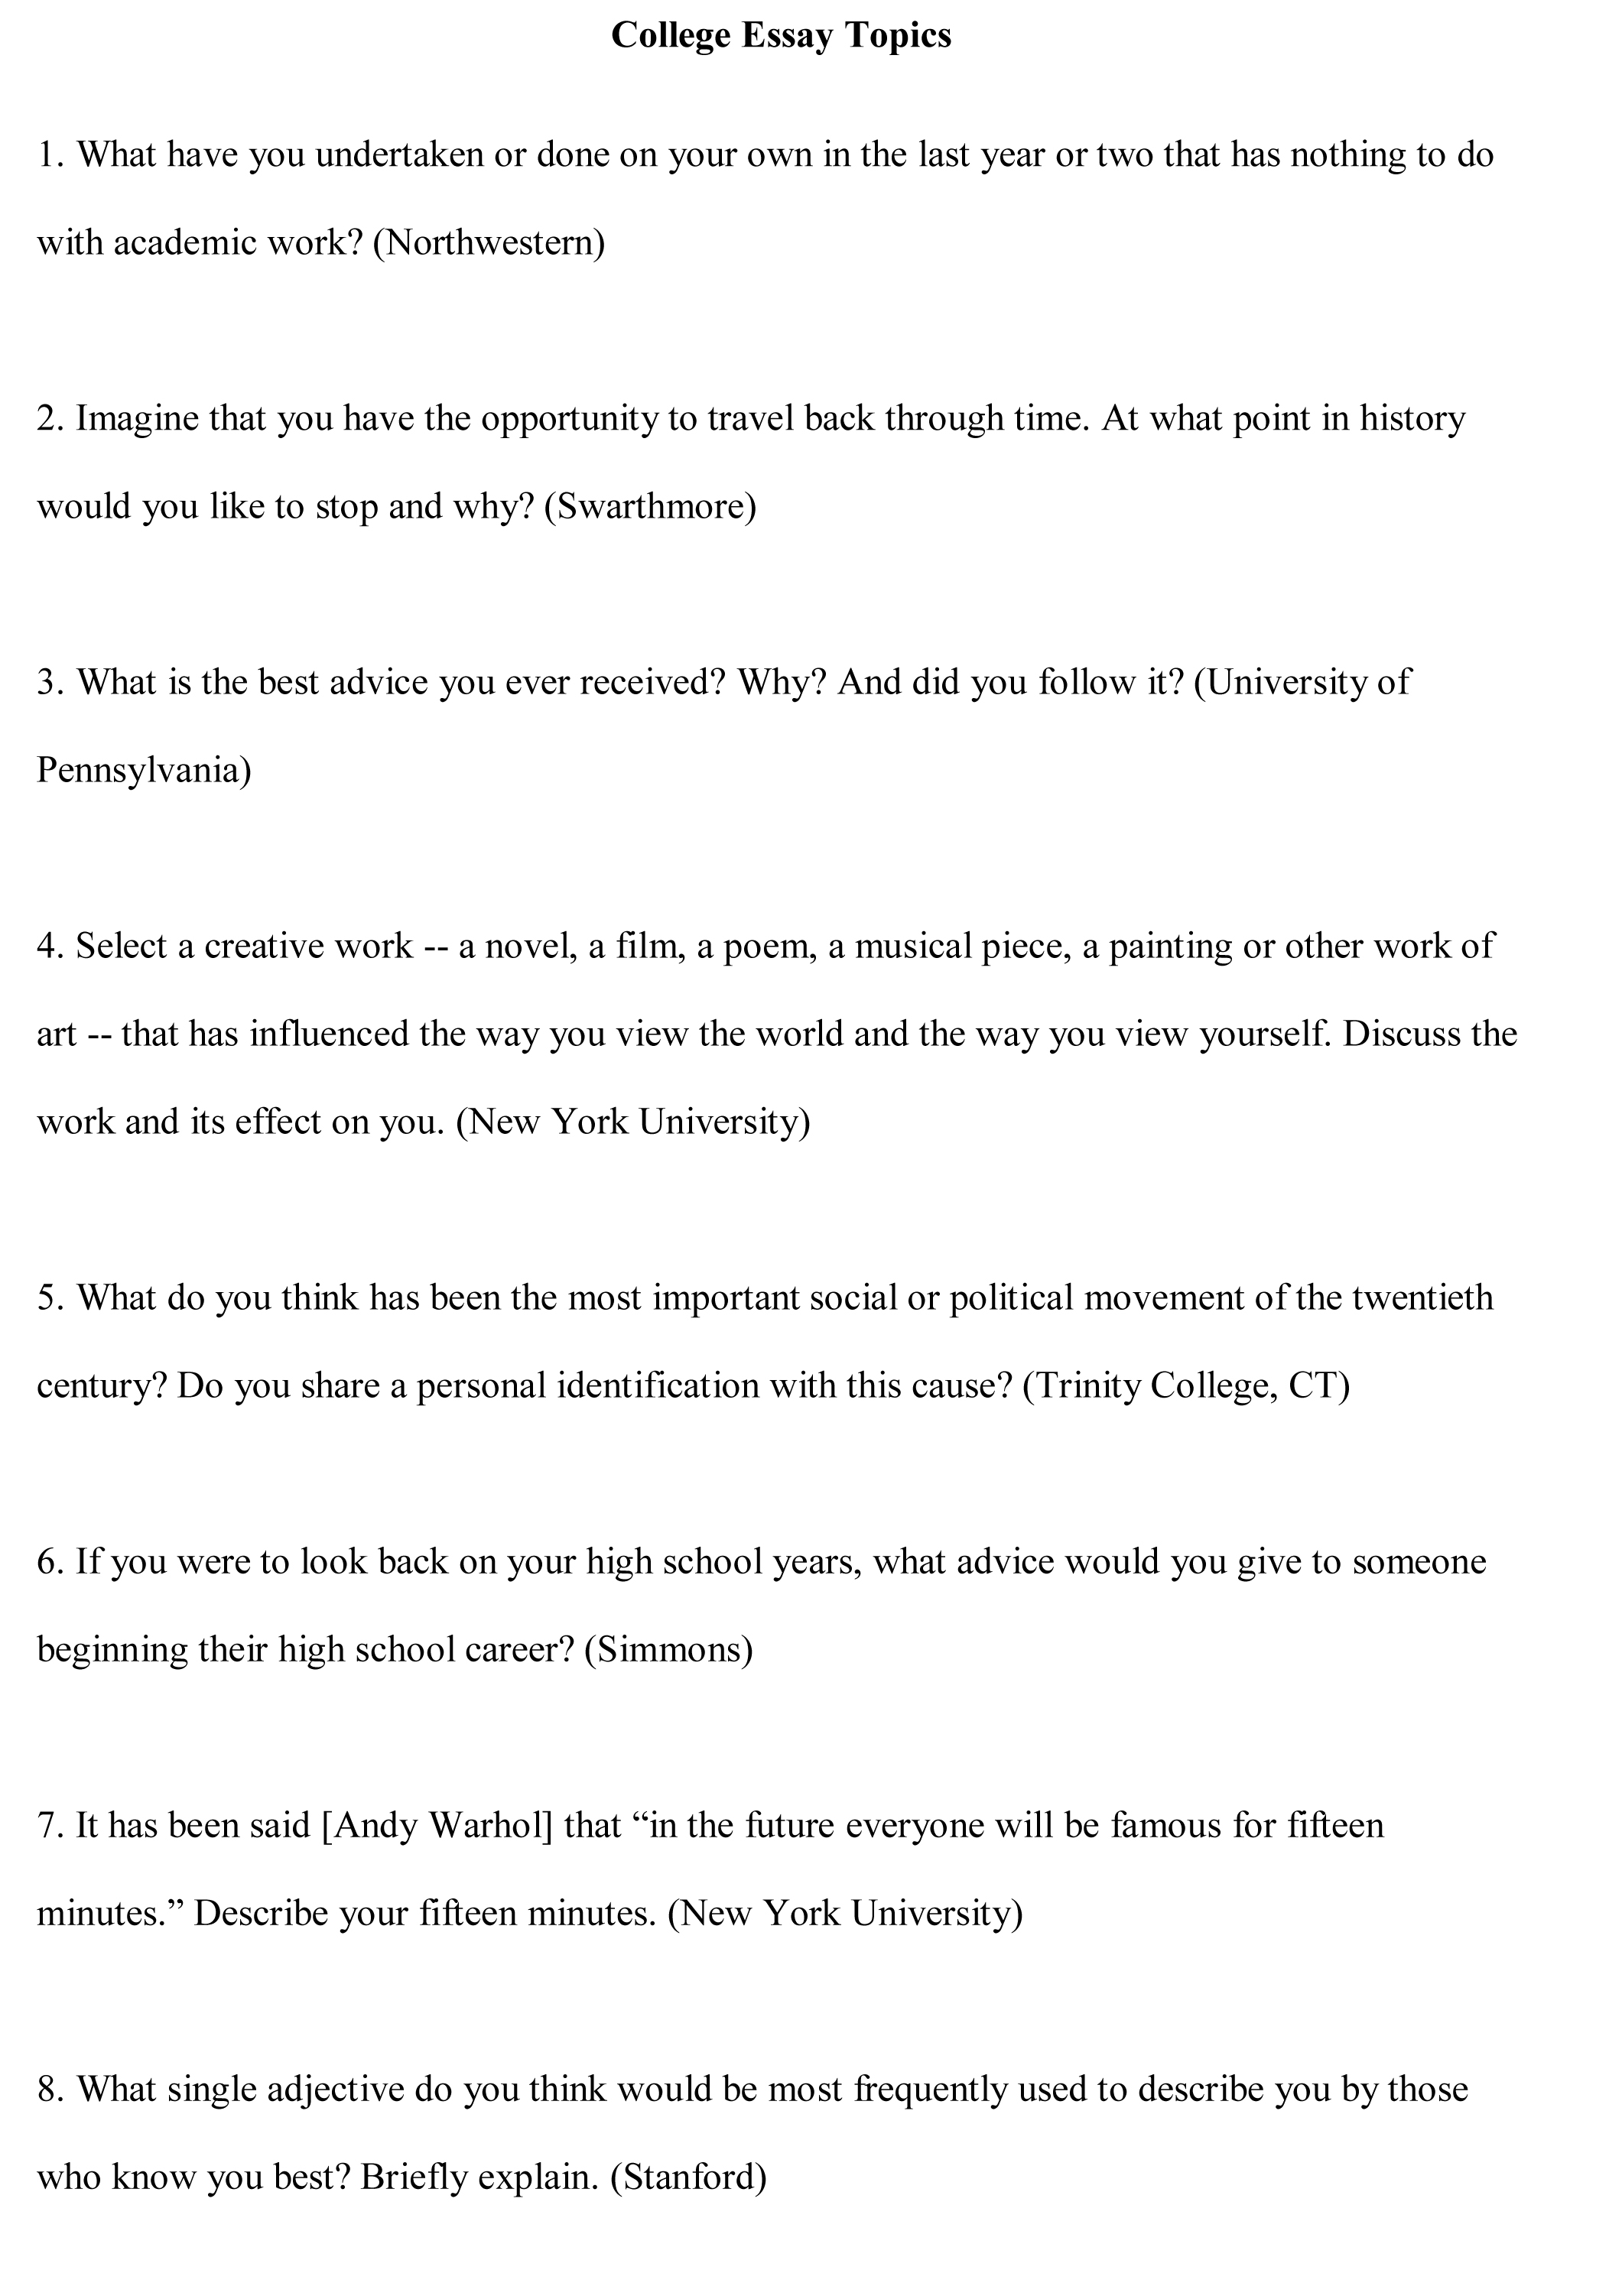 007 College Essay Topics Free Sample1 Good Best For 8th Graders Persuasive Middle School Great High Full